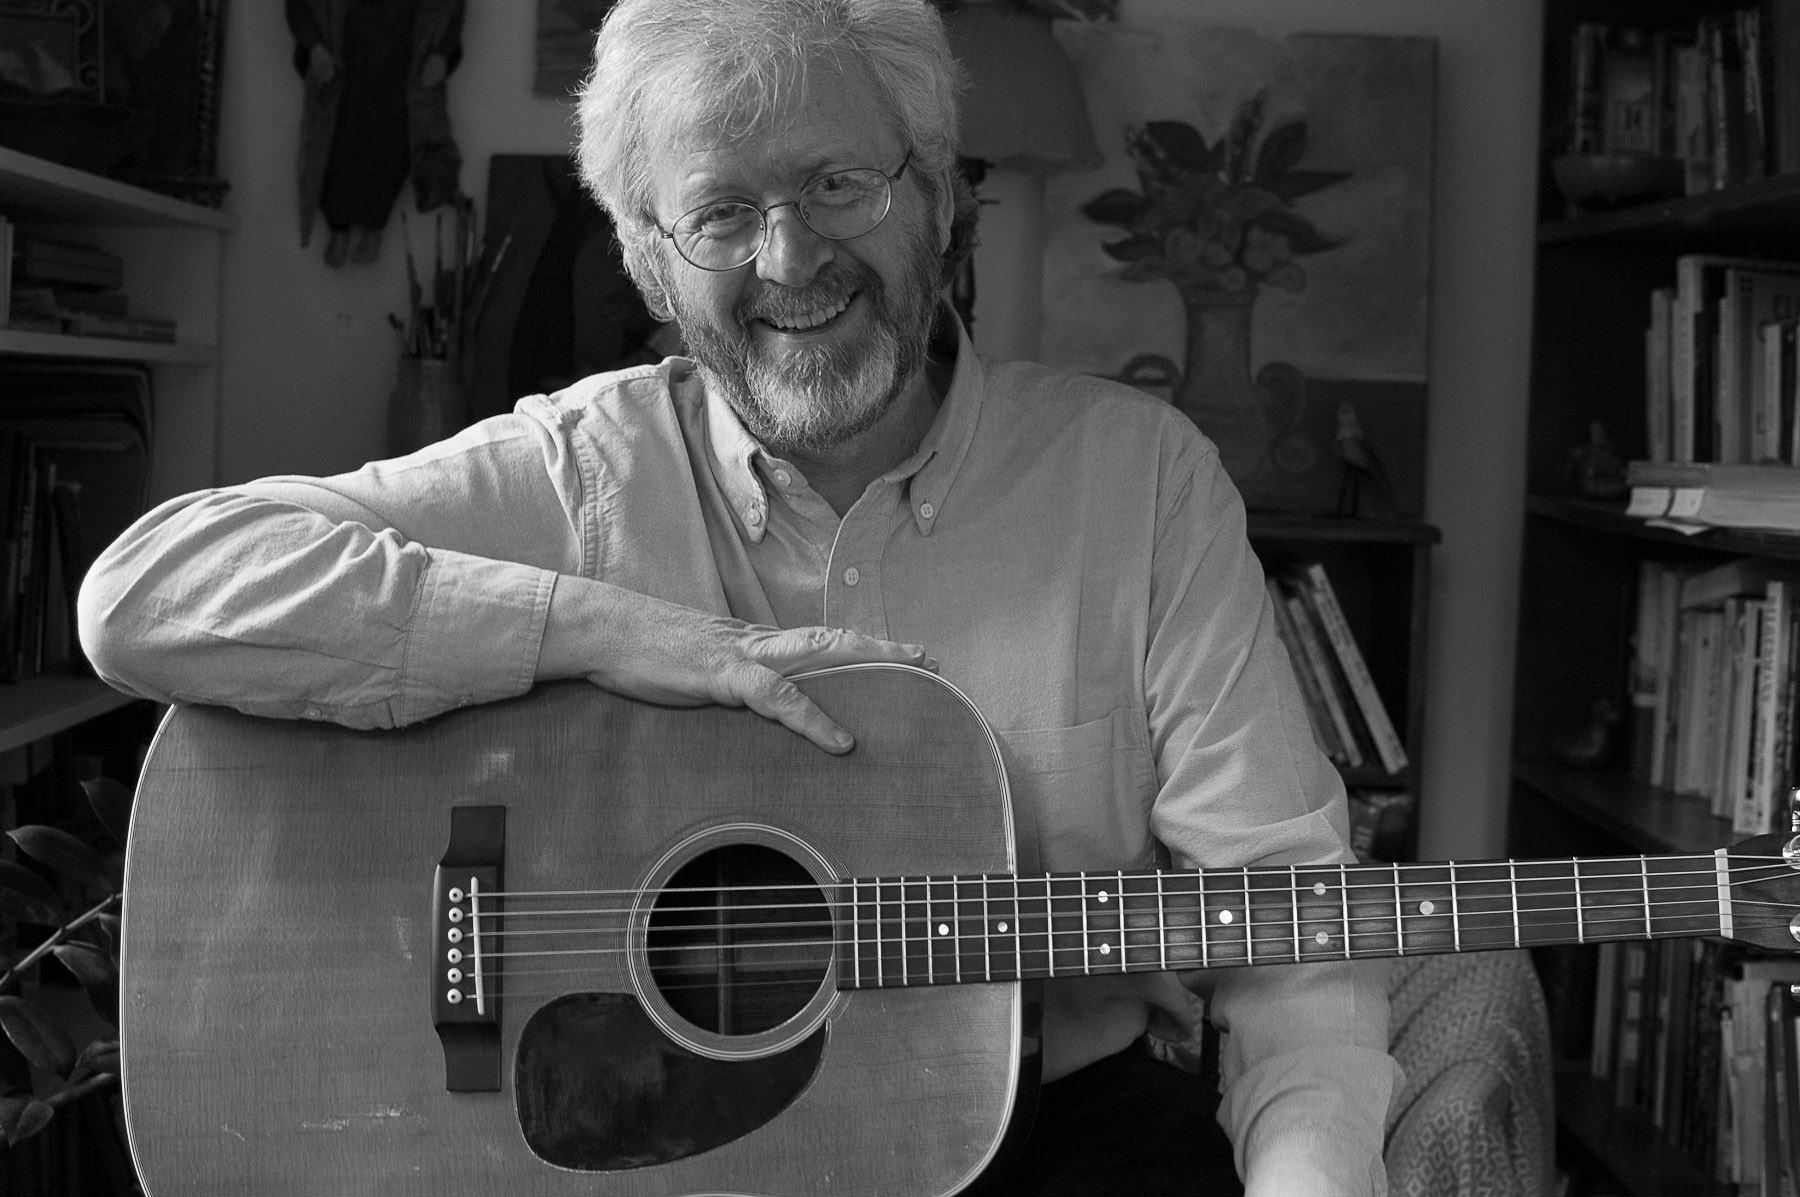 Joyful older man sitting at ease holding his guitar and smiling right at the camera.